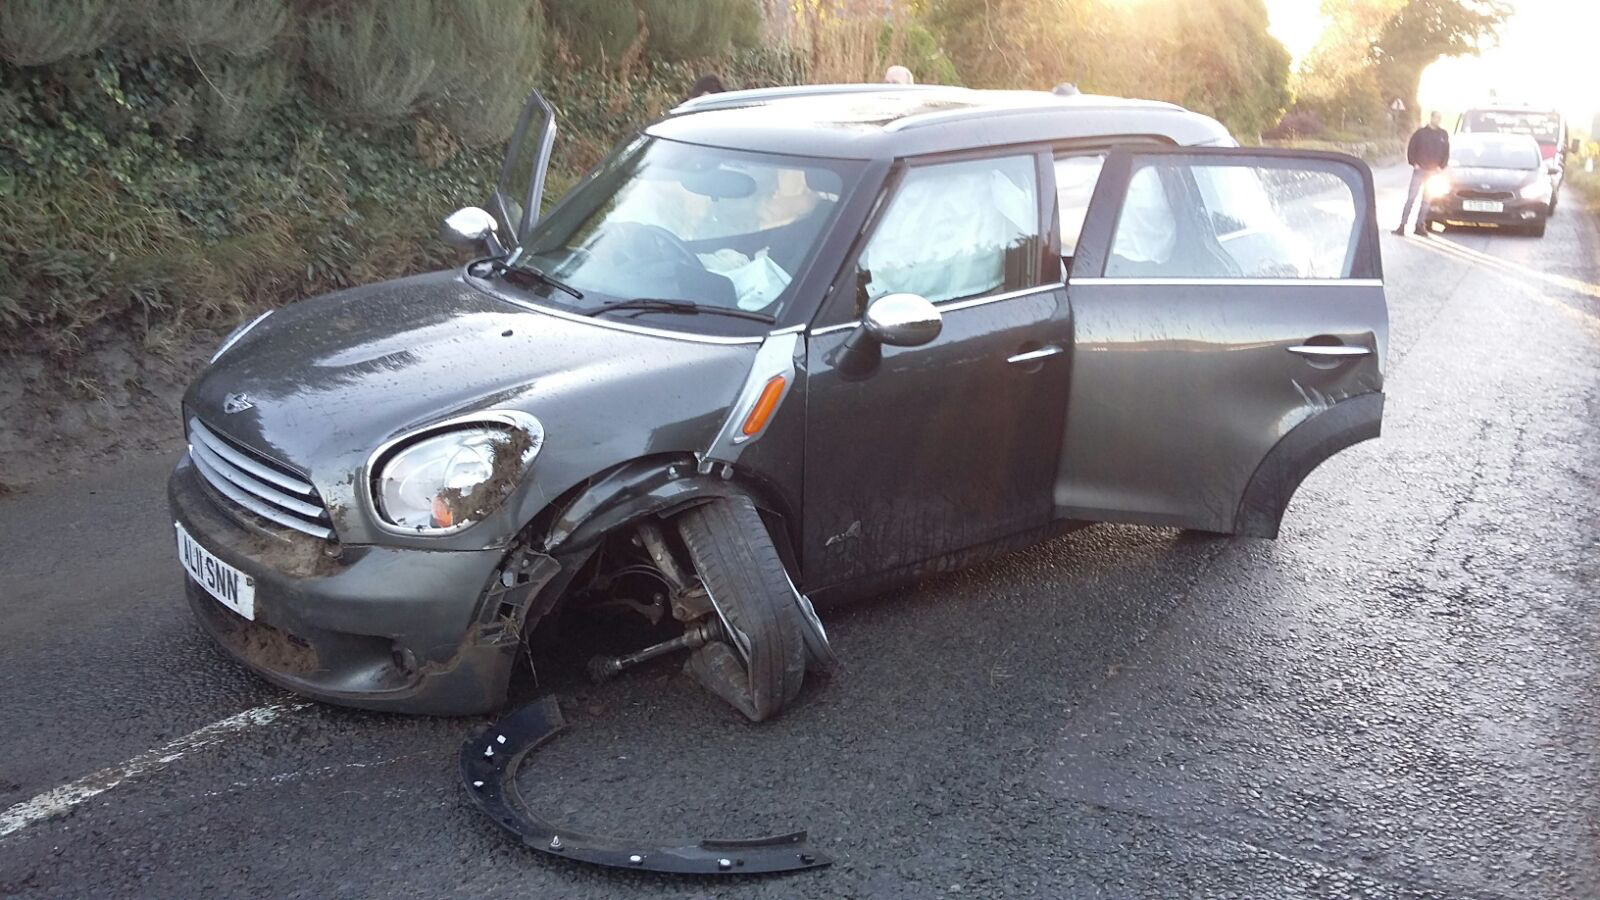 Alison's Mini Countryman was badly damaged after a boulder hit it.